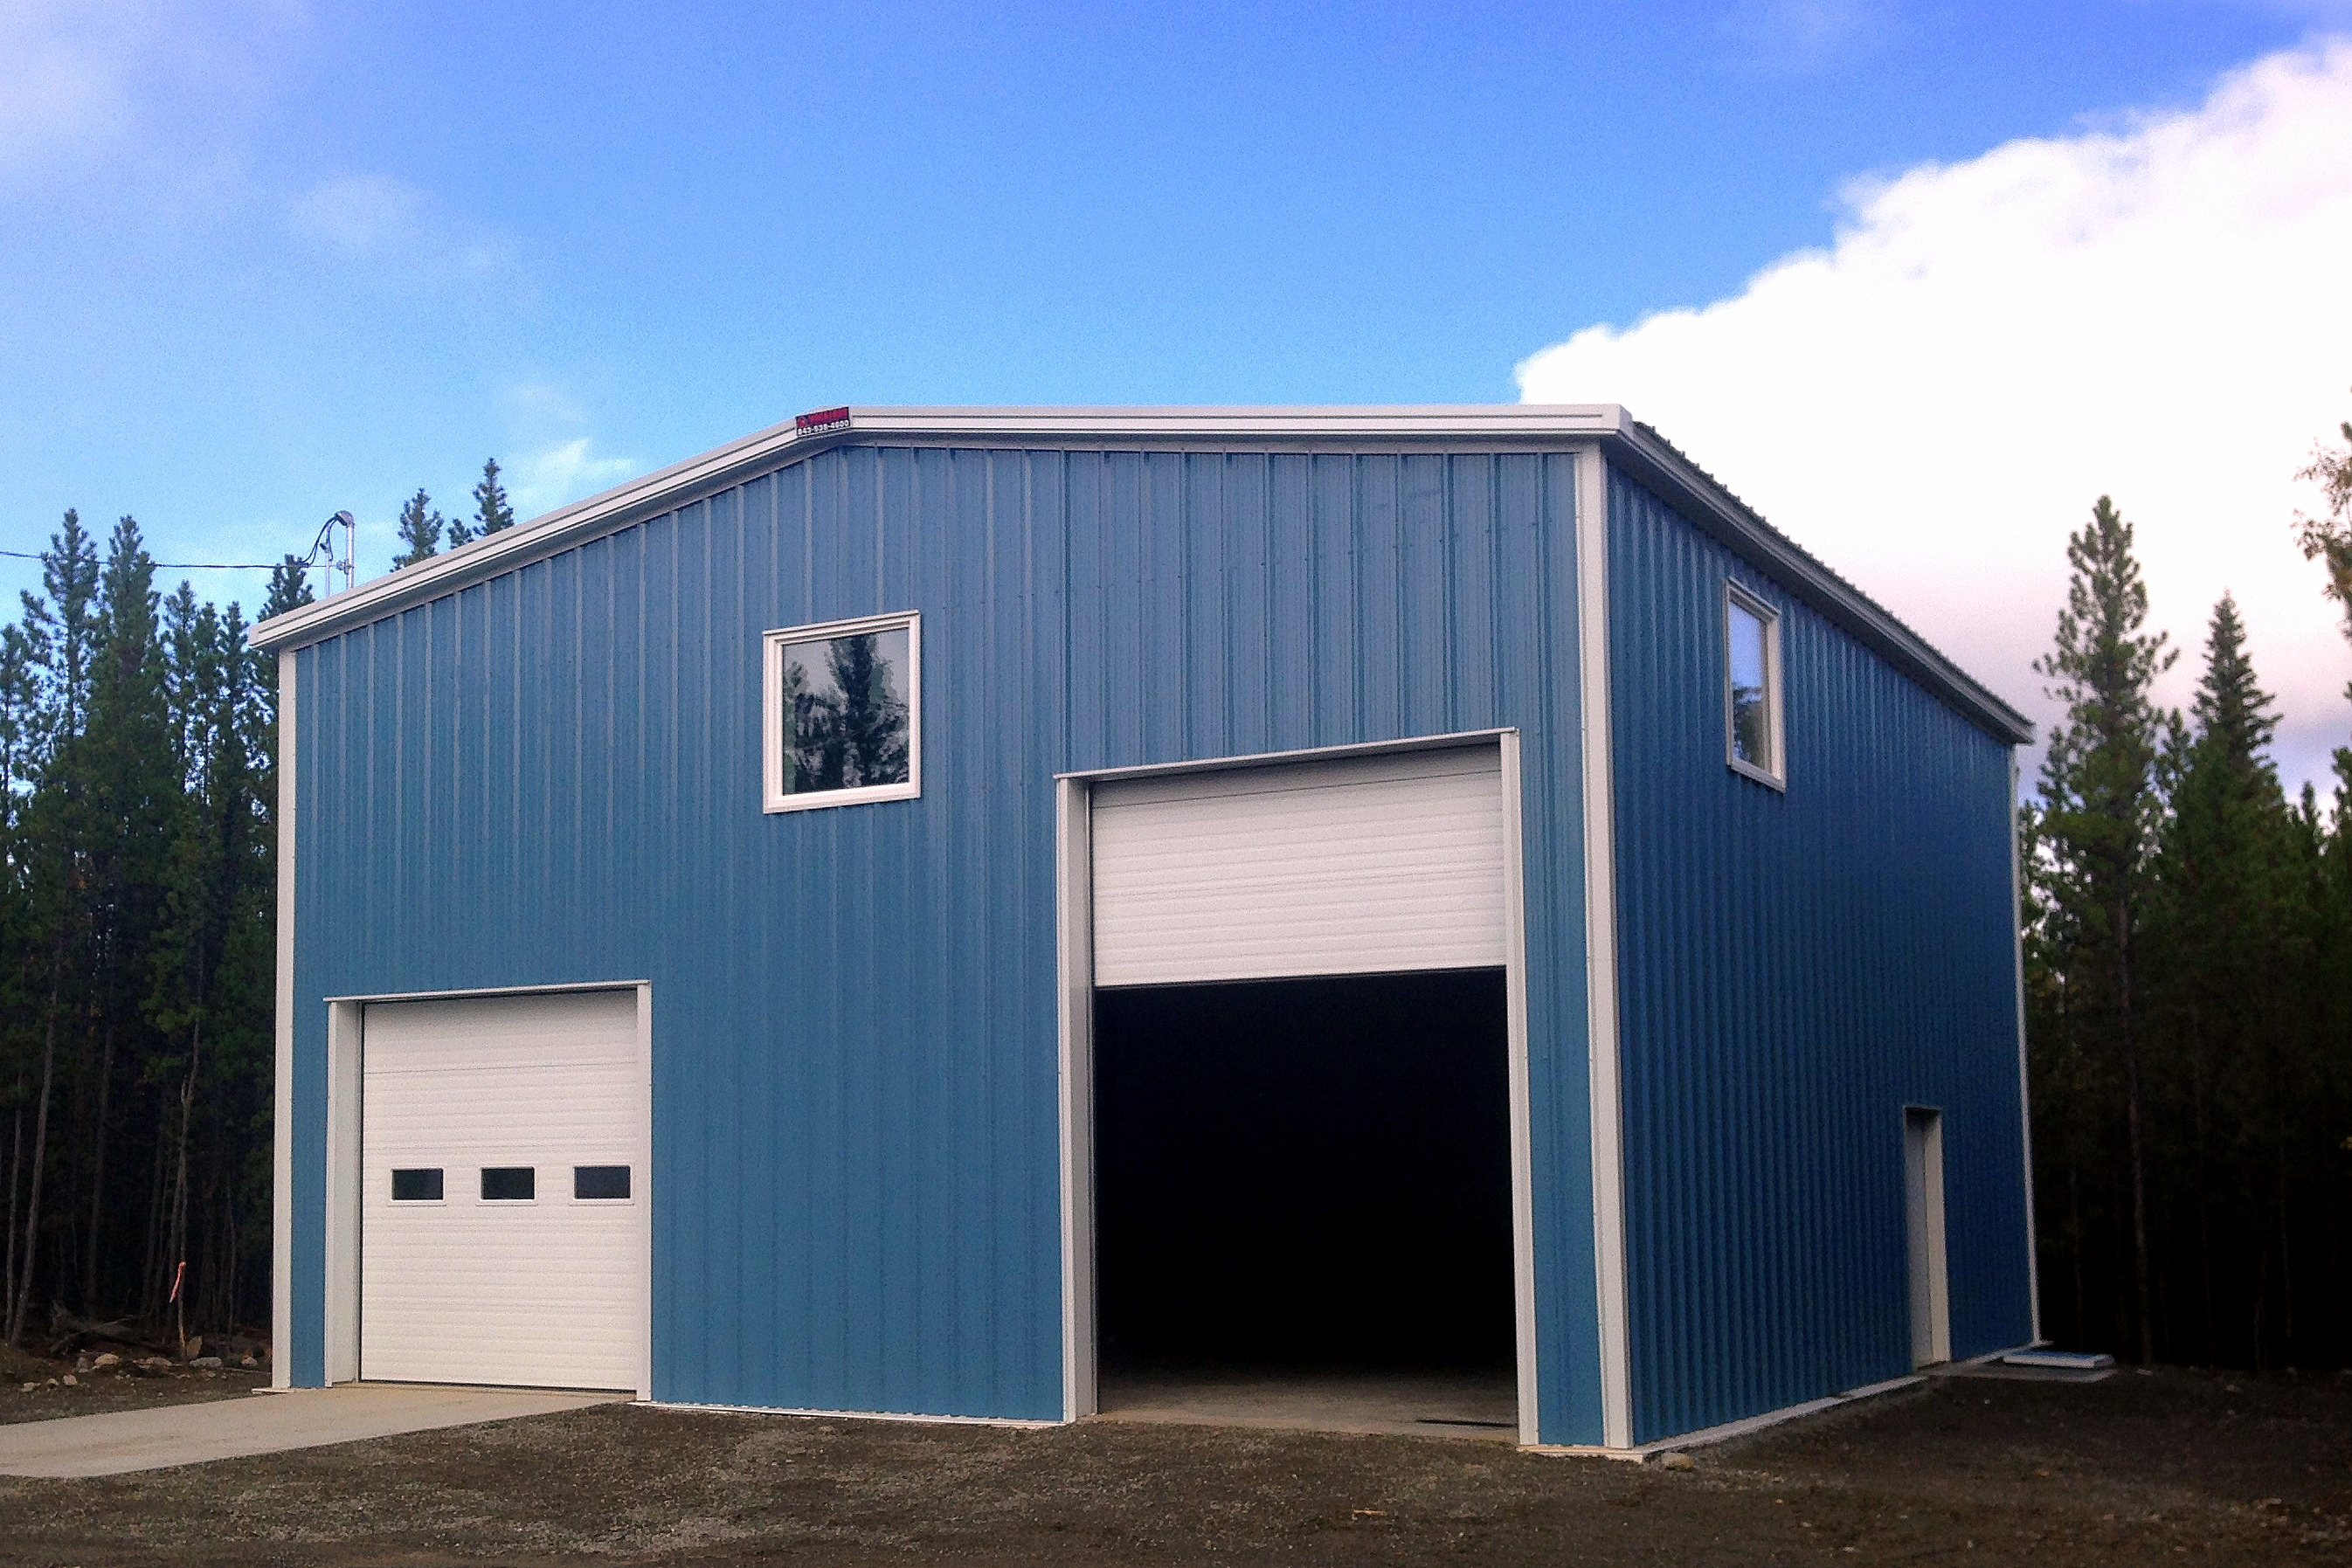 cir steel arctic garage wasilla reeve buildings s ak fox